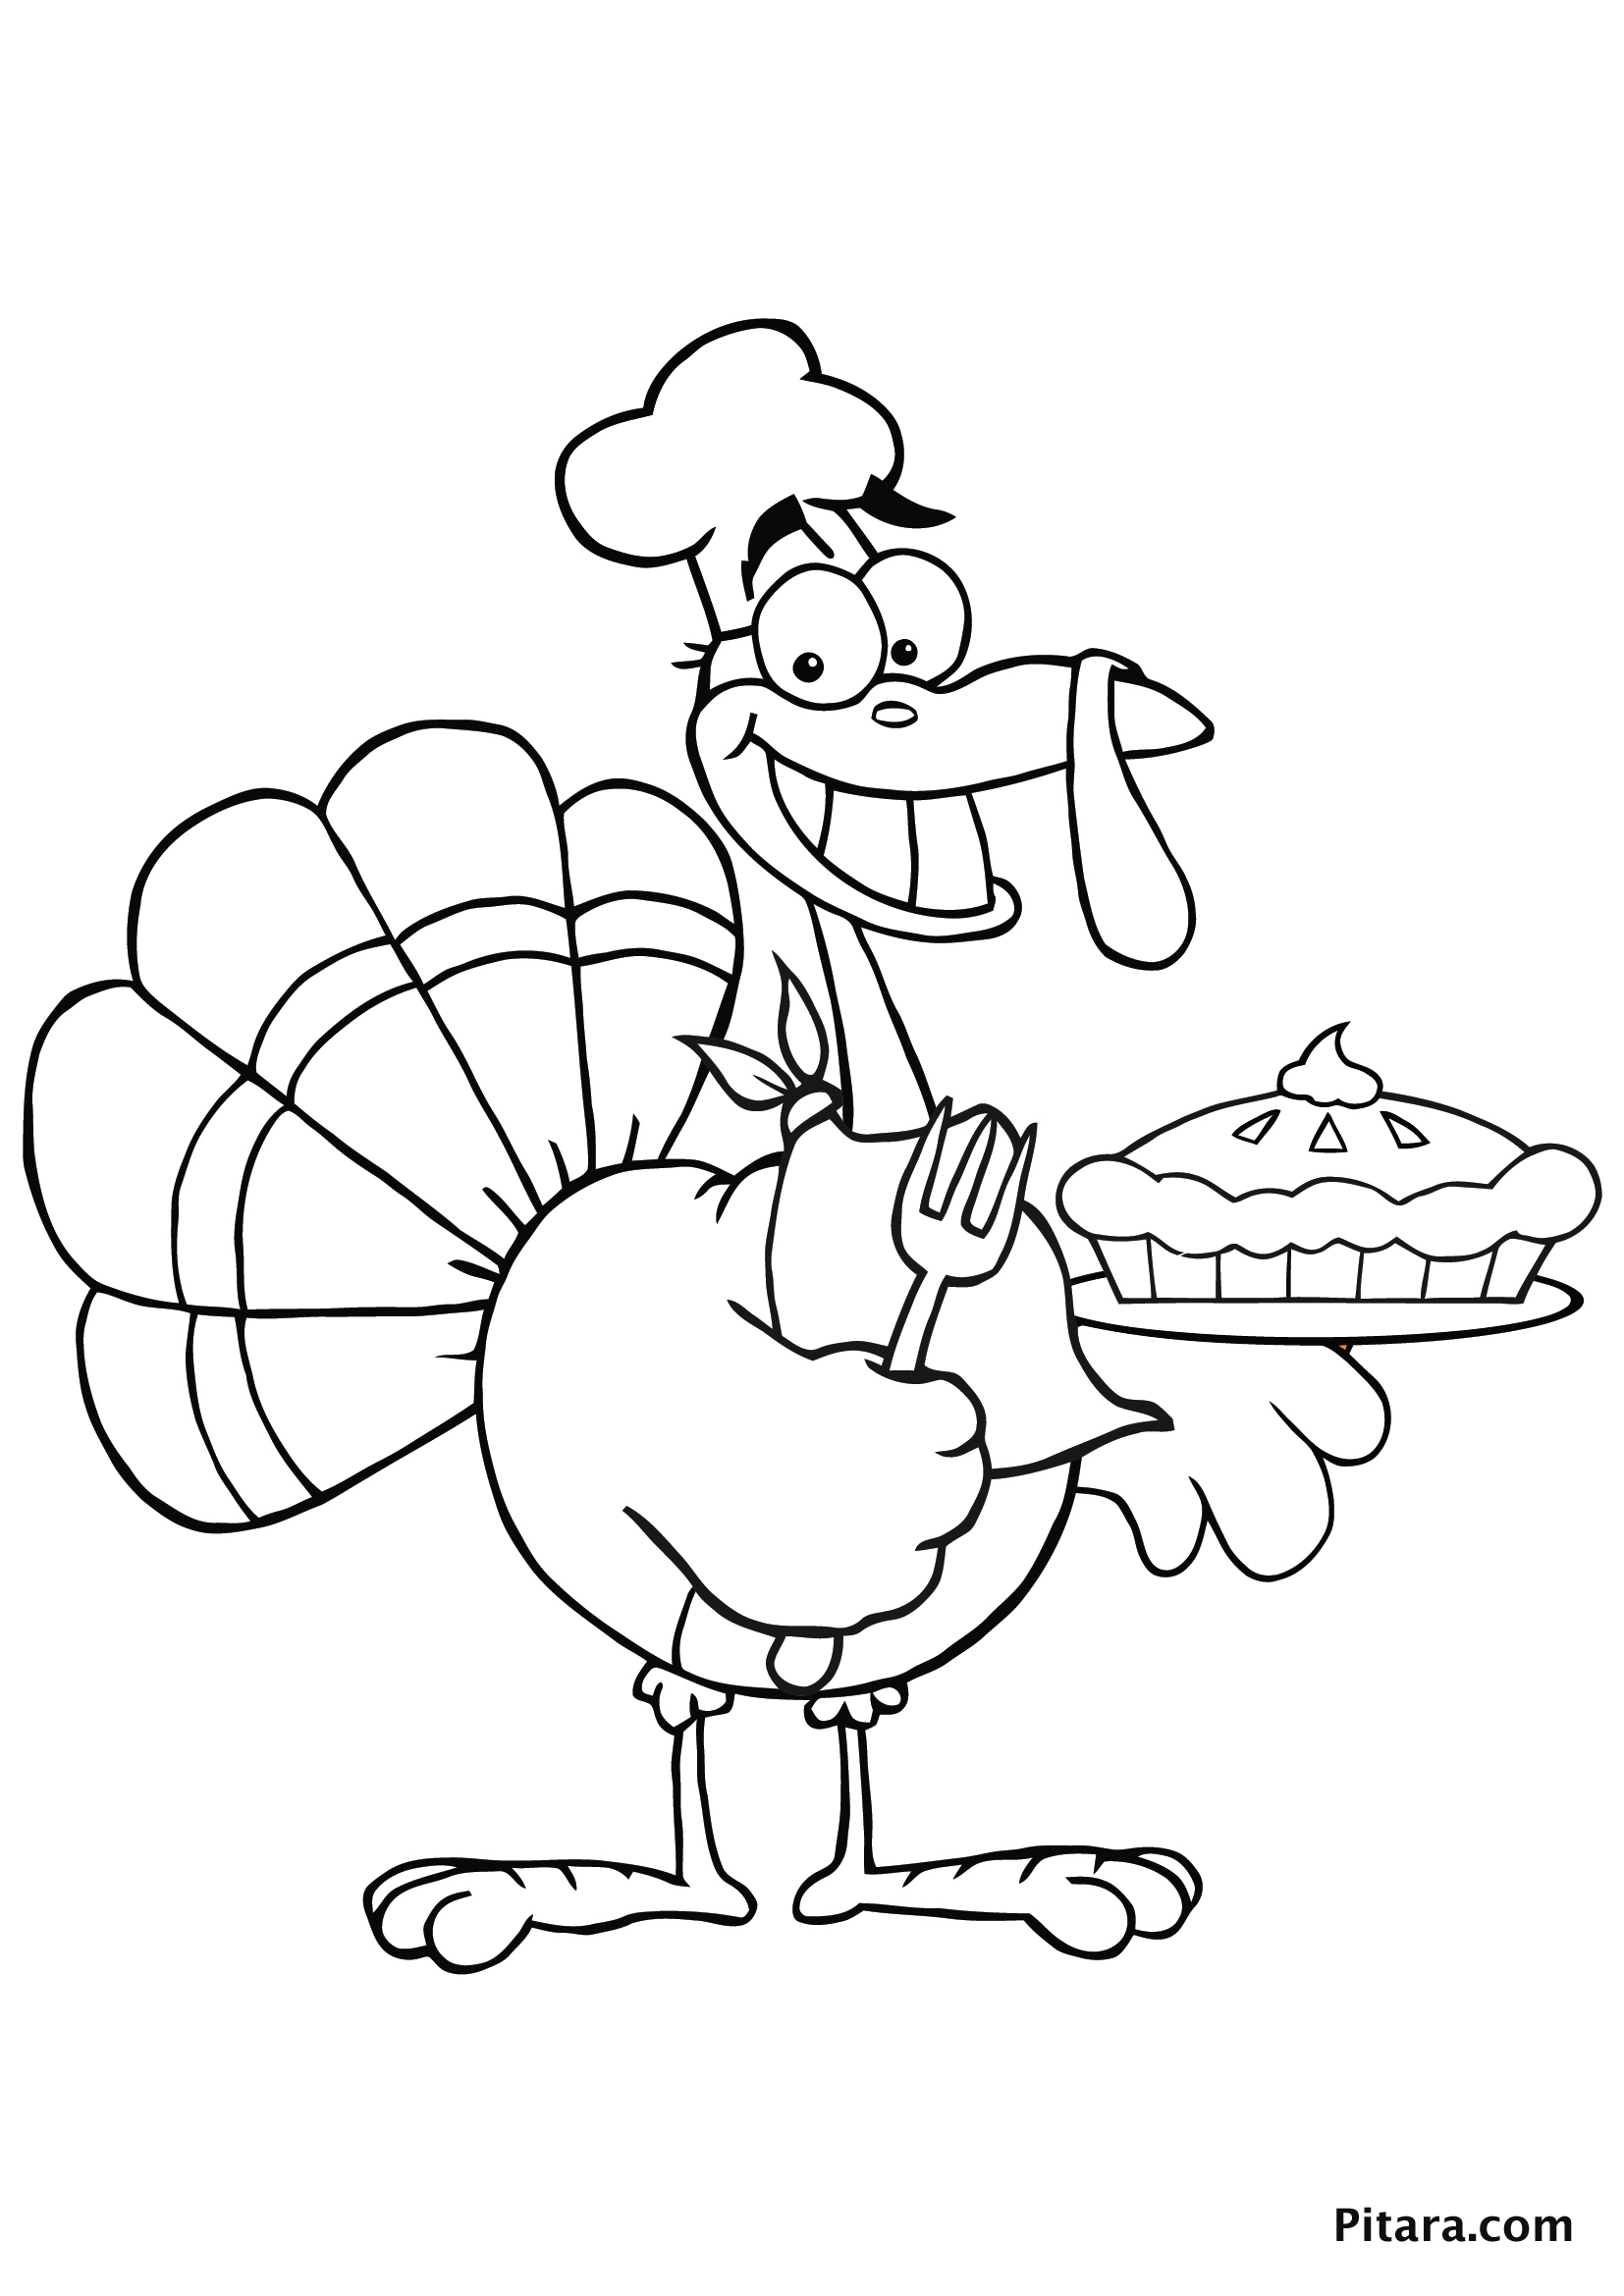 Turkey Coloring Pages for Kids | Pitara Kids' Network